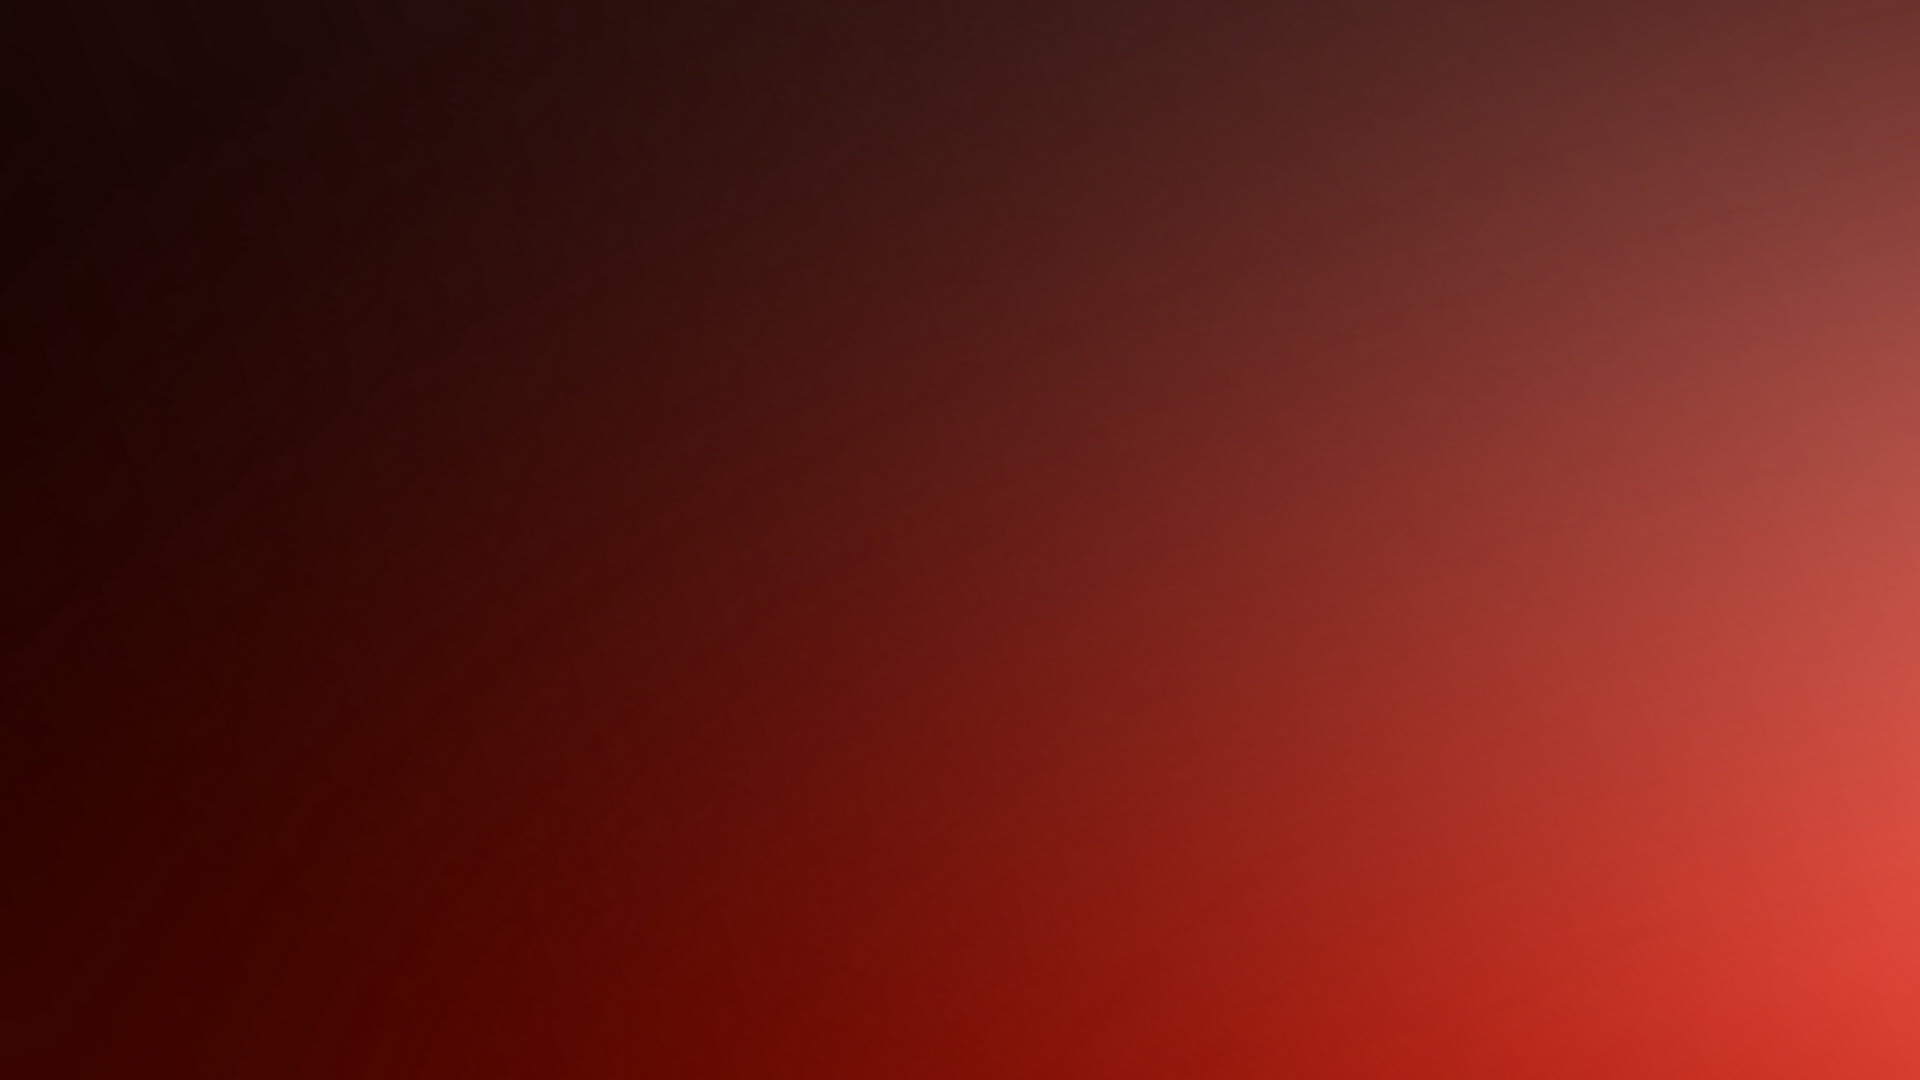 Solid Red wallpaper photo full hd